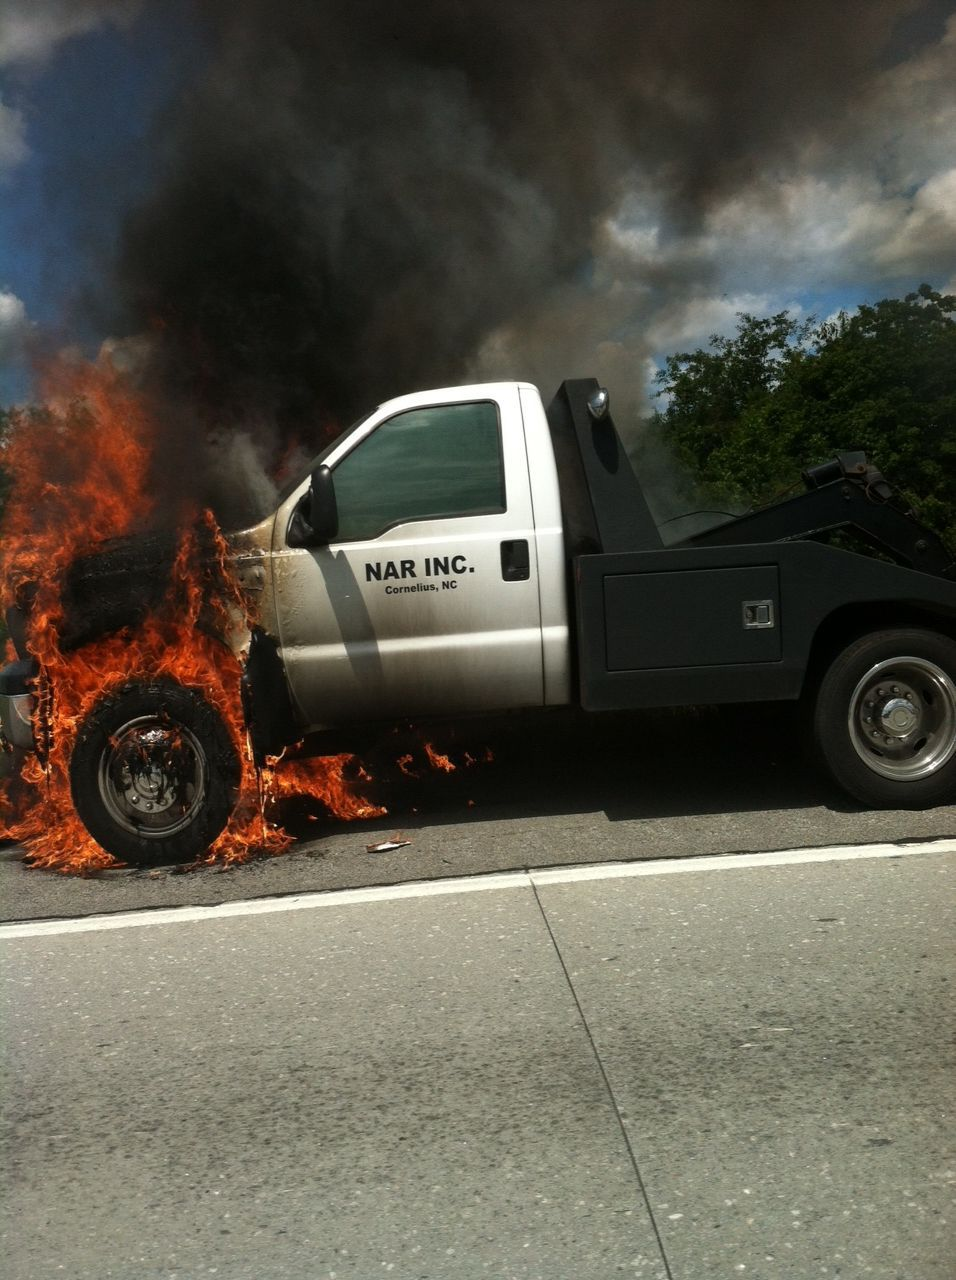 Tow truck bursts into flames while towing disabled vehicle on I-26